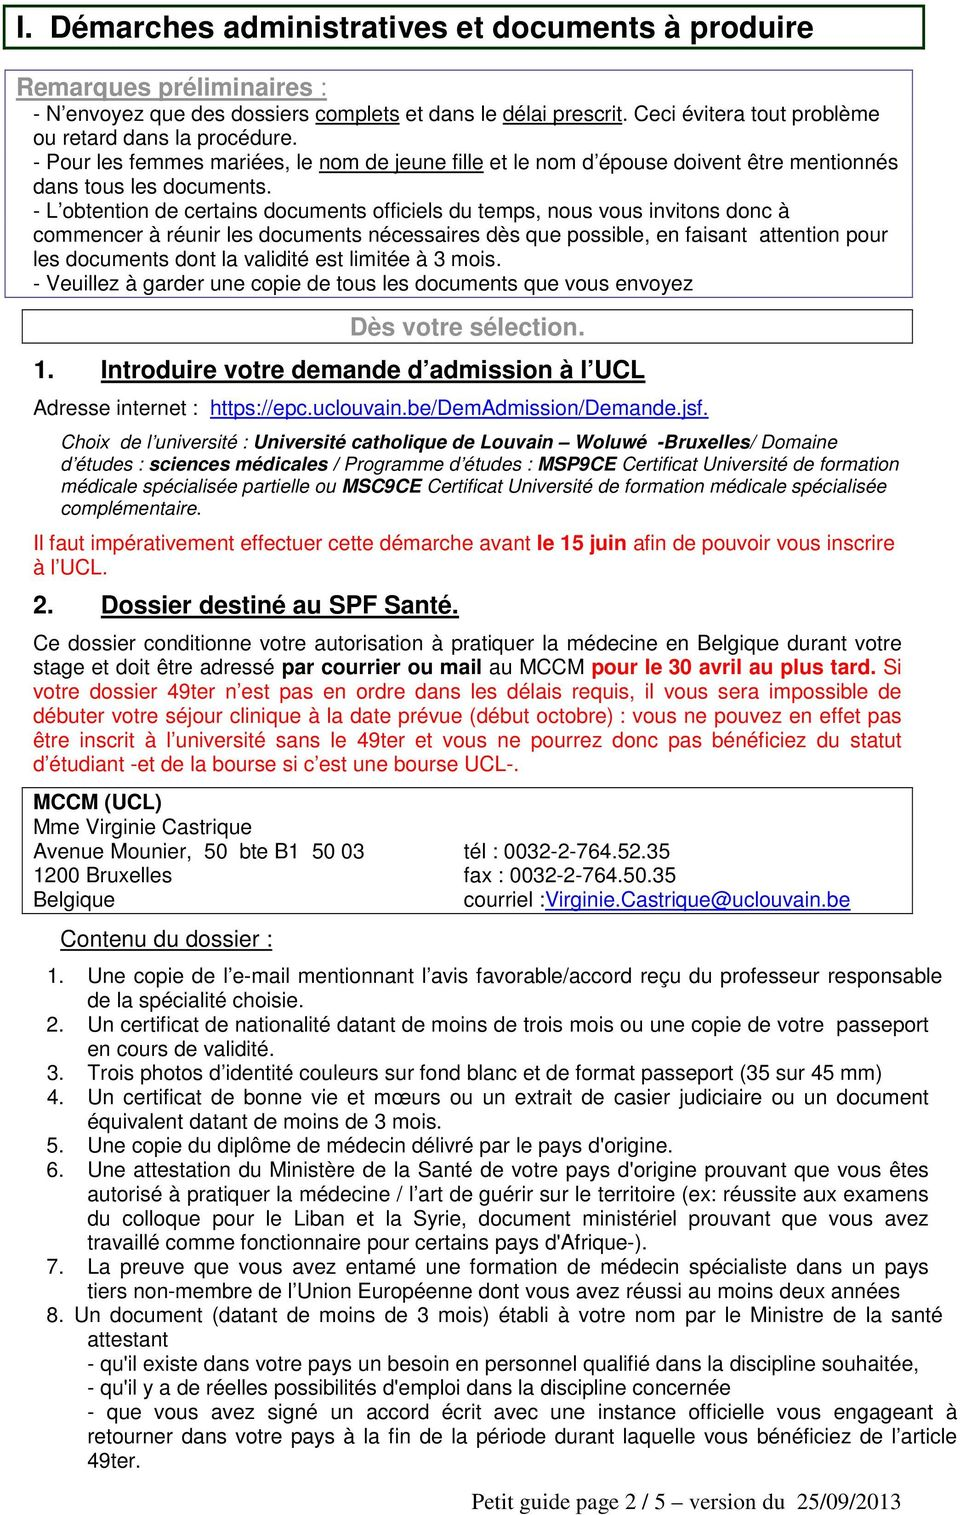 - L obtention de certains documents officiels du temps, nous vous invitons donc à commencer à réunir les documents nécessaires dès que possible, en faisant attention pour les documents dont la